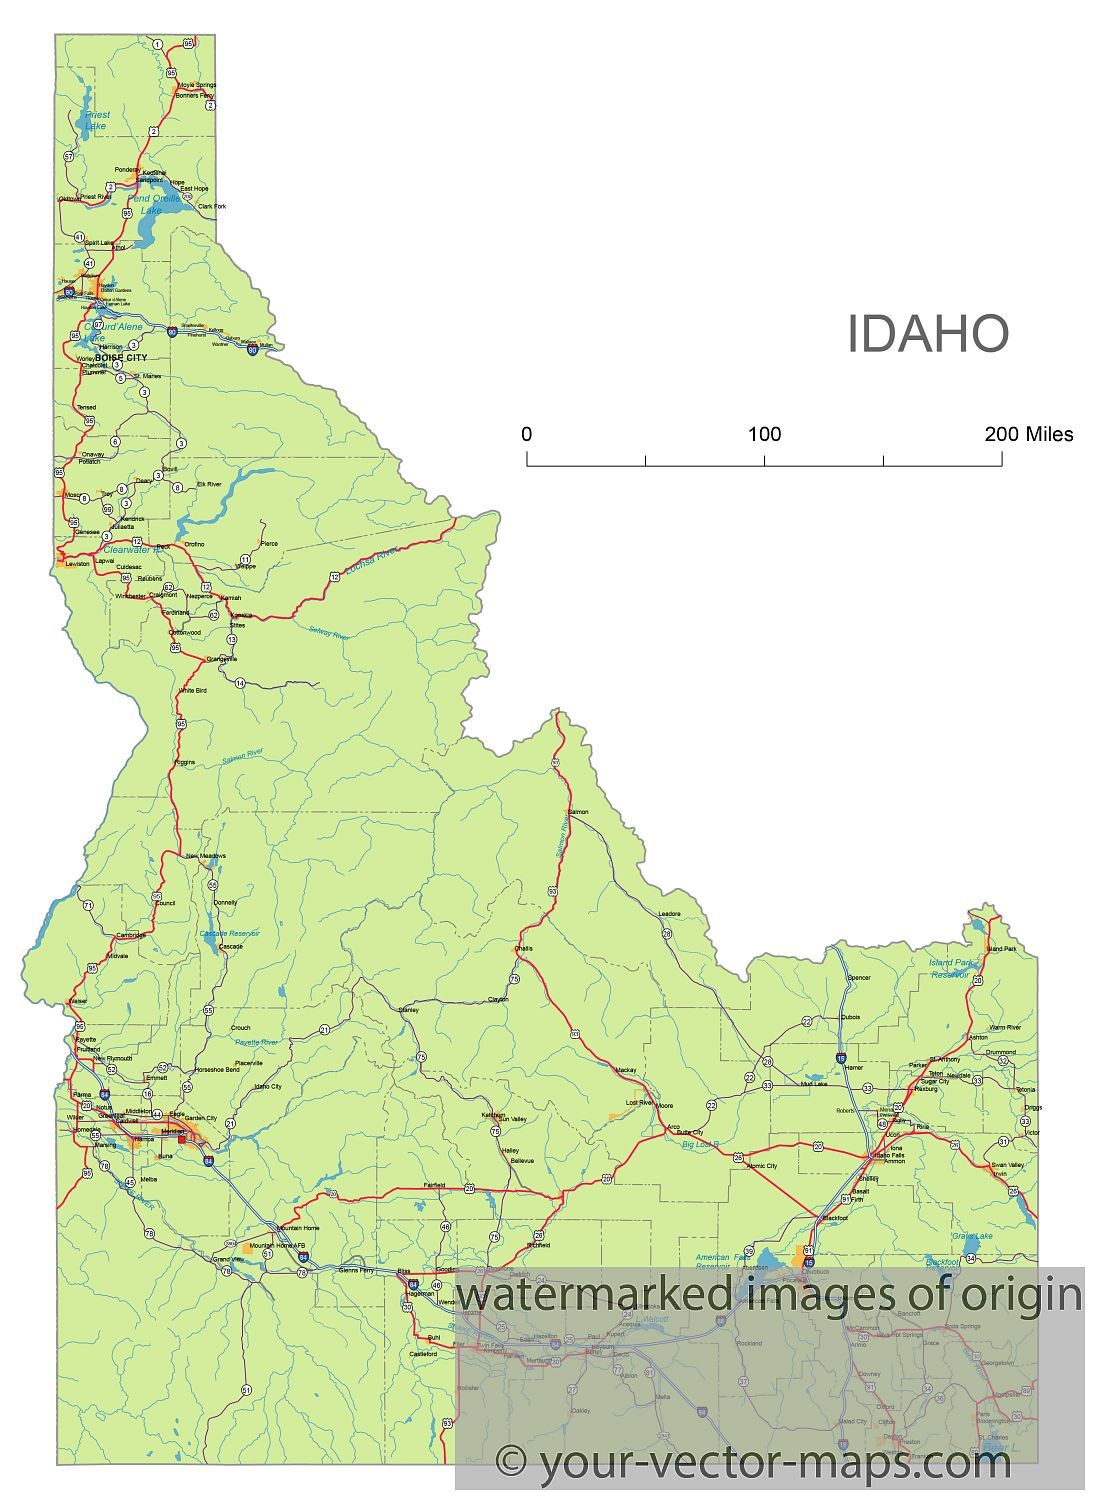 Idaho State Route Network Map Idaho Highways Map Cities